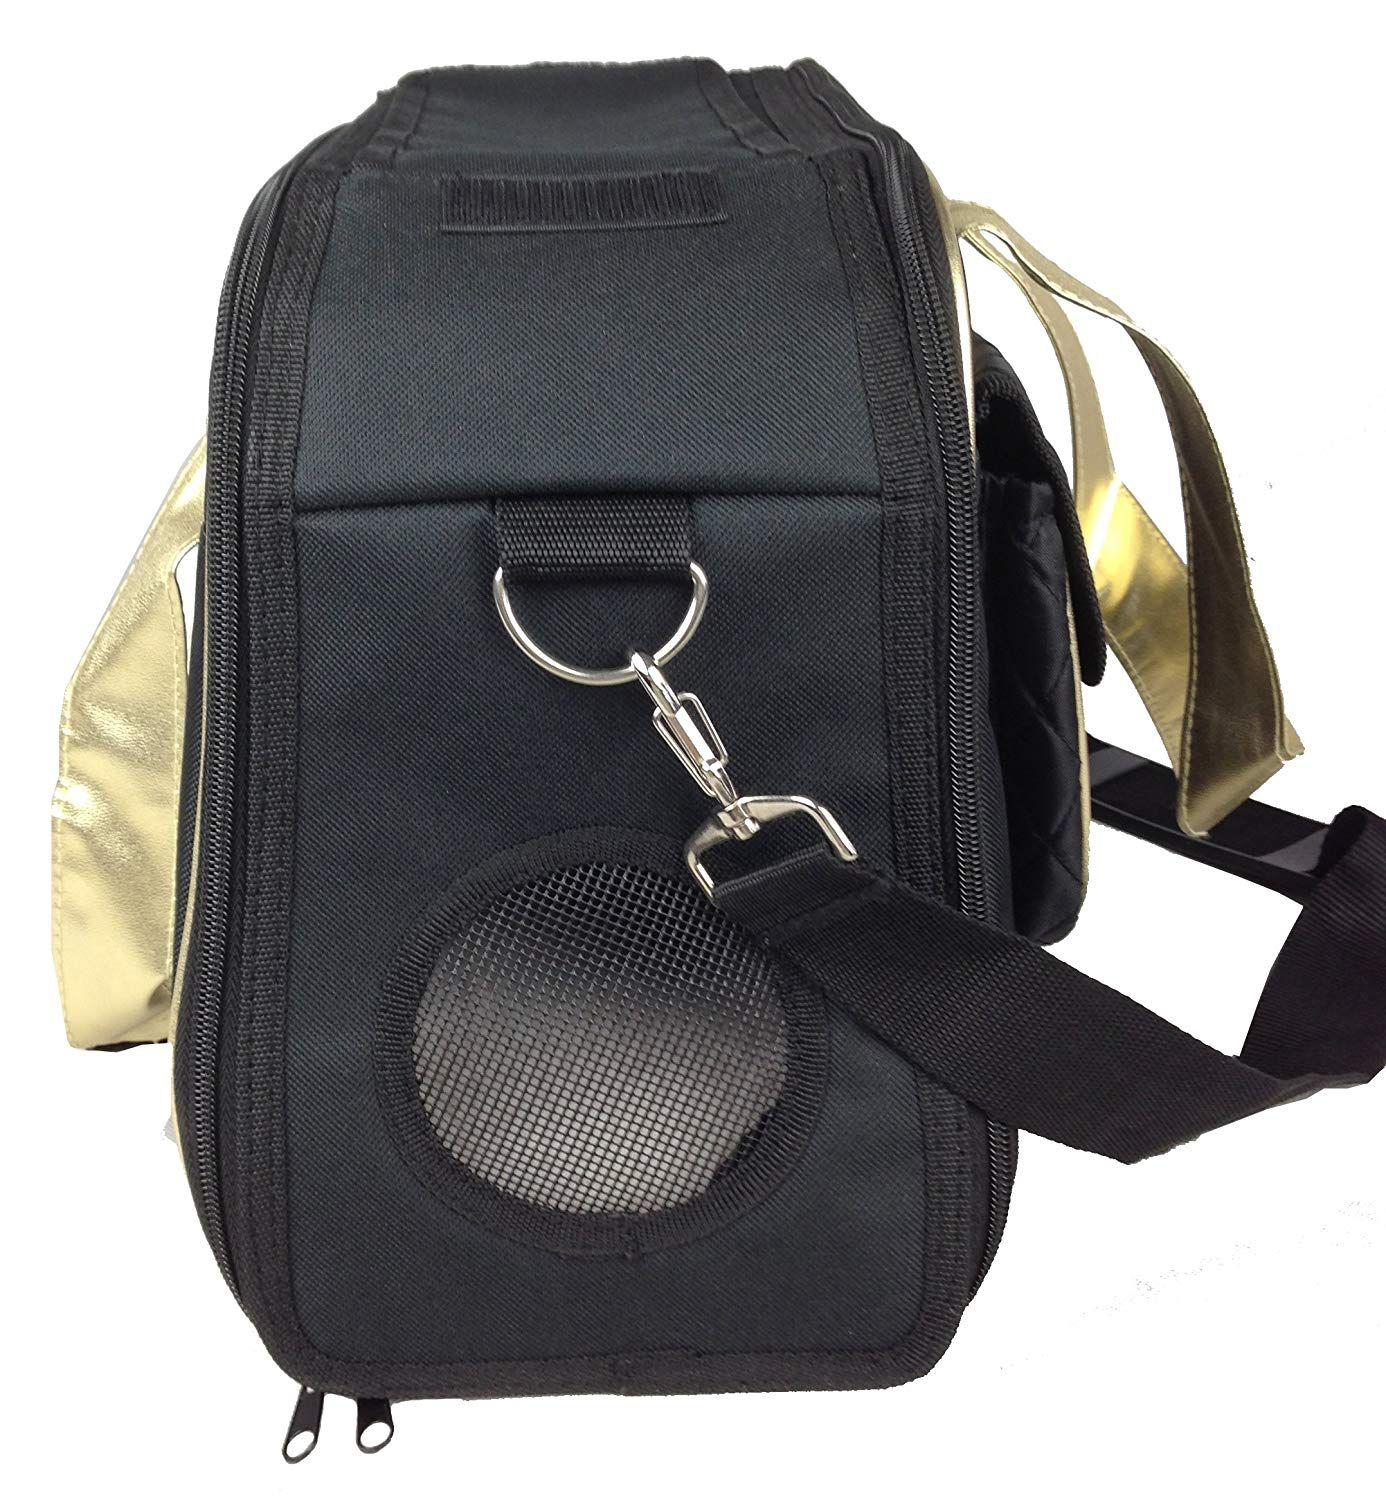 Airline Approved Mystique Fashion Pet Carrier >>> Check